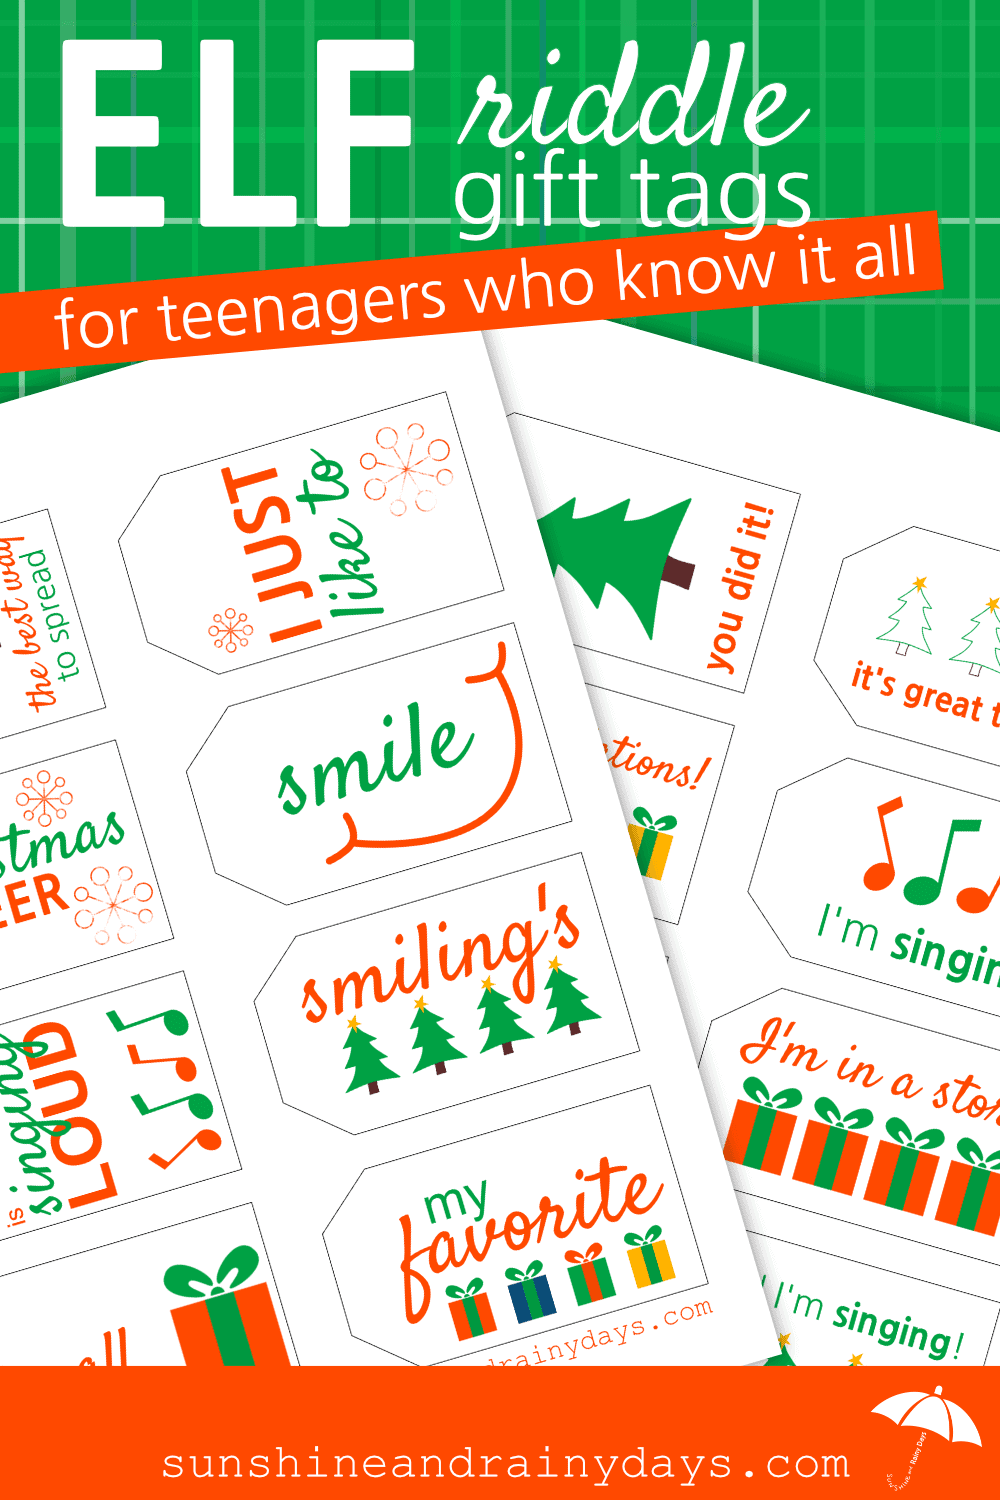 With two Know It All Teenagers in the house, there is no way I am going to put names on Christmas gifts this year. Instead I came up with Christmas Gift Tags For Teenagers Who Know It All.